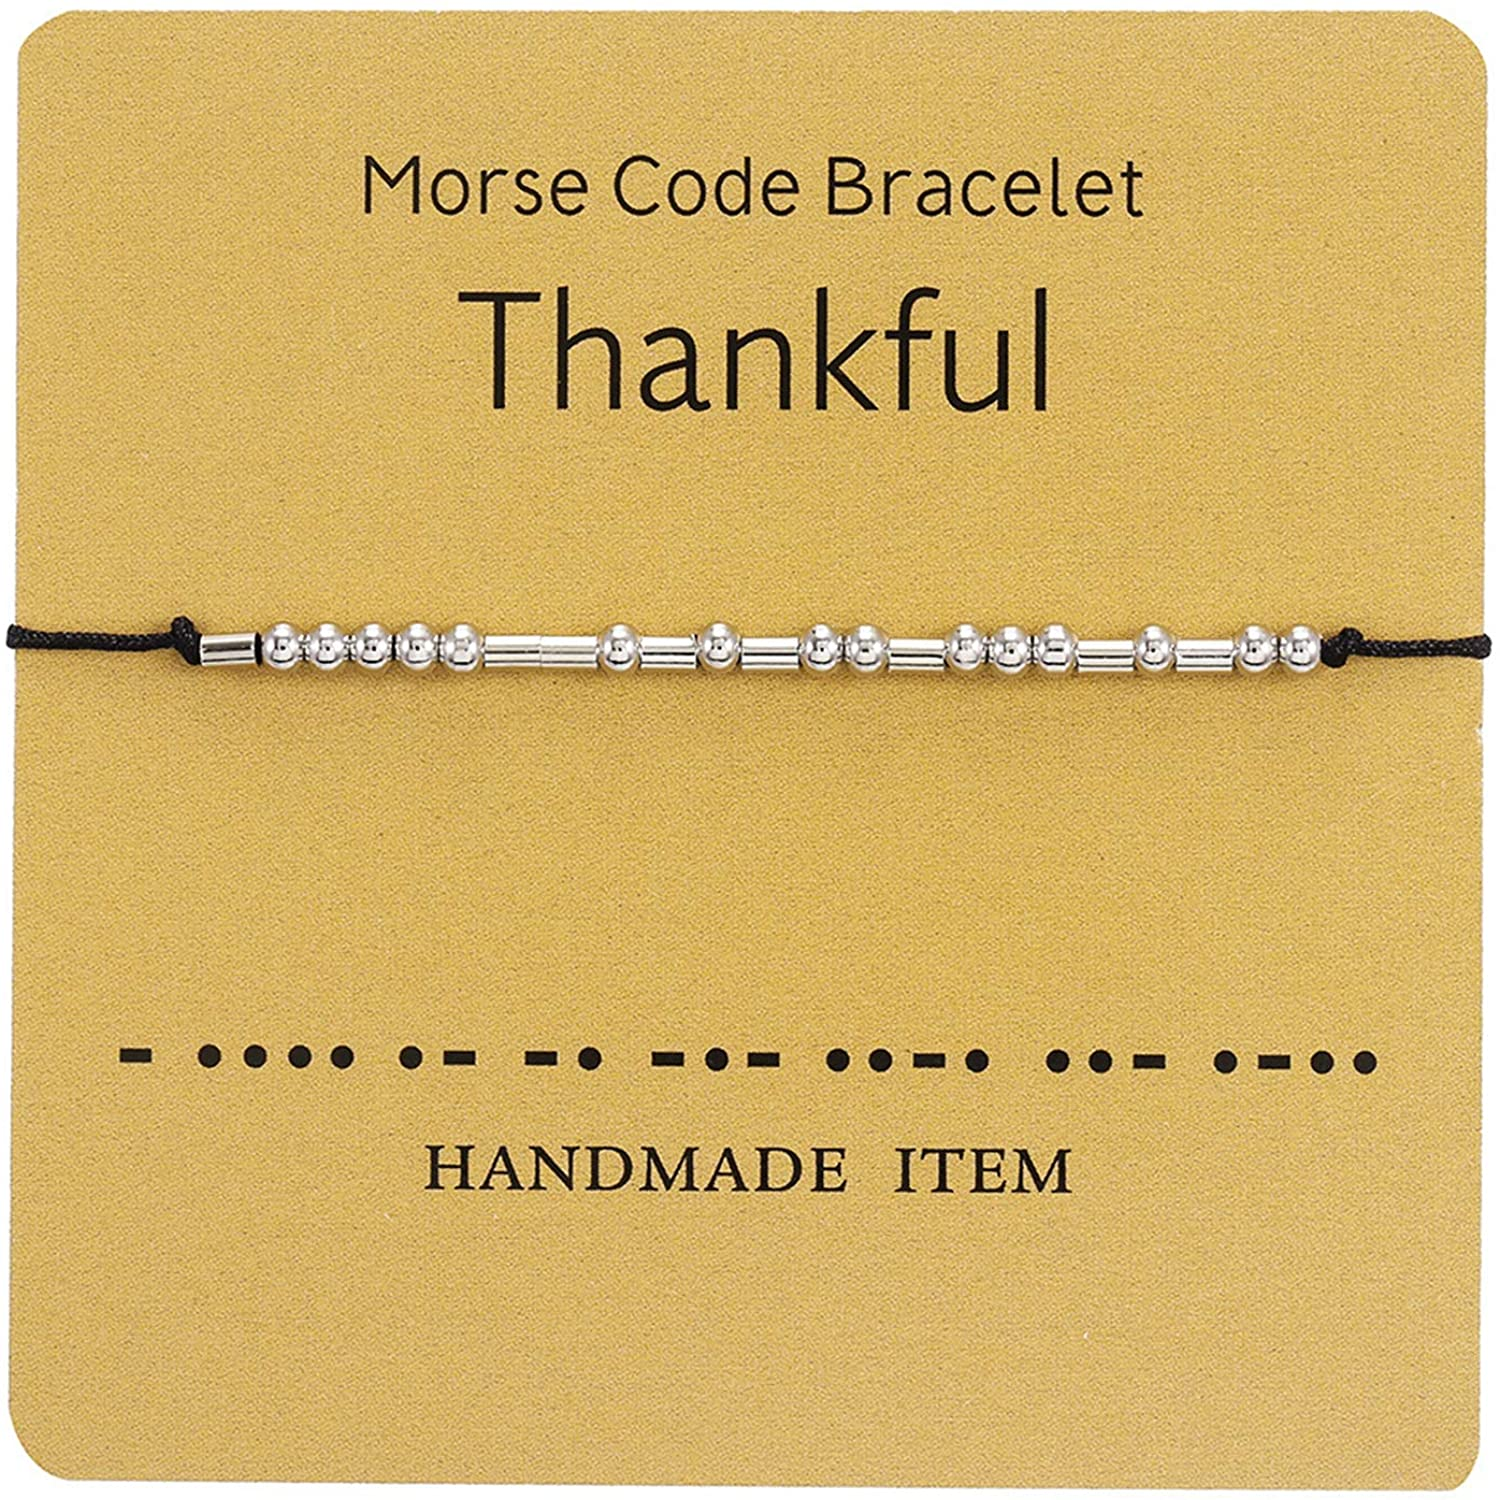 MRSXXNTY 2020 Thanksgiving Morse Code Bracelet Bad Ass Adjustable Bracelet Beads on Silk Cord Friendship Inspirational Jewelry Gifts for Her